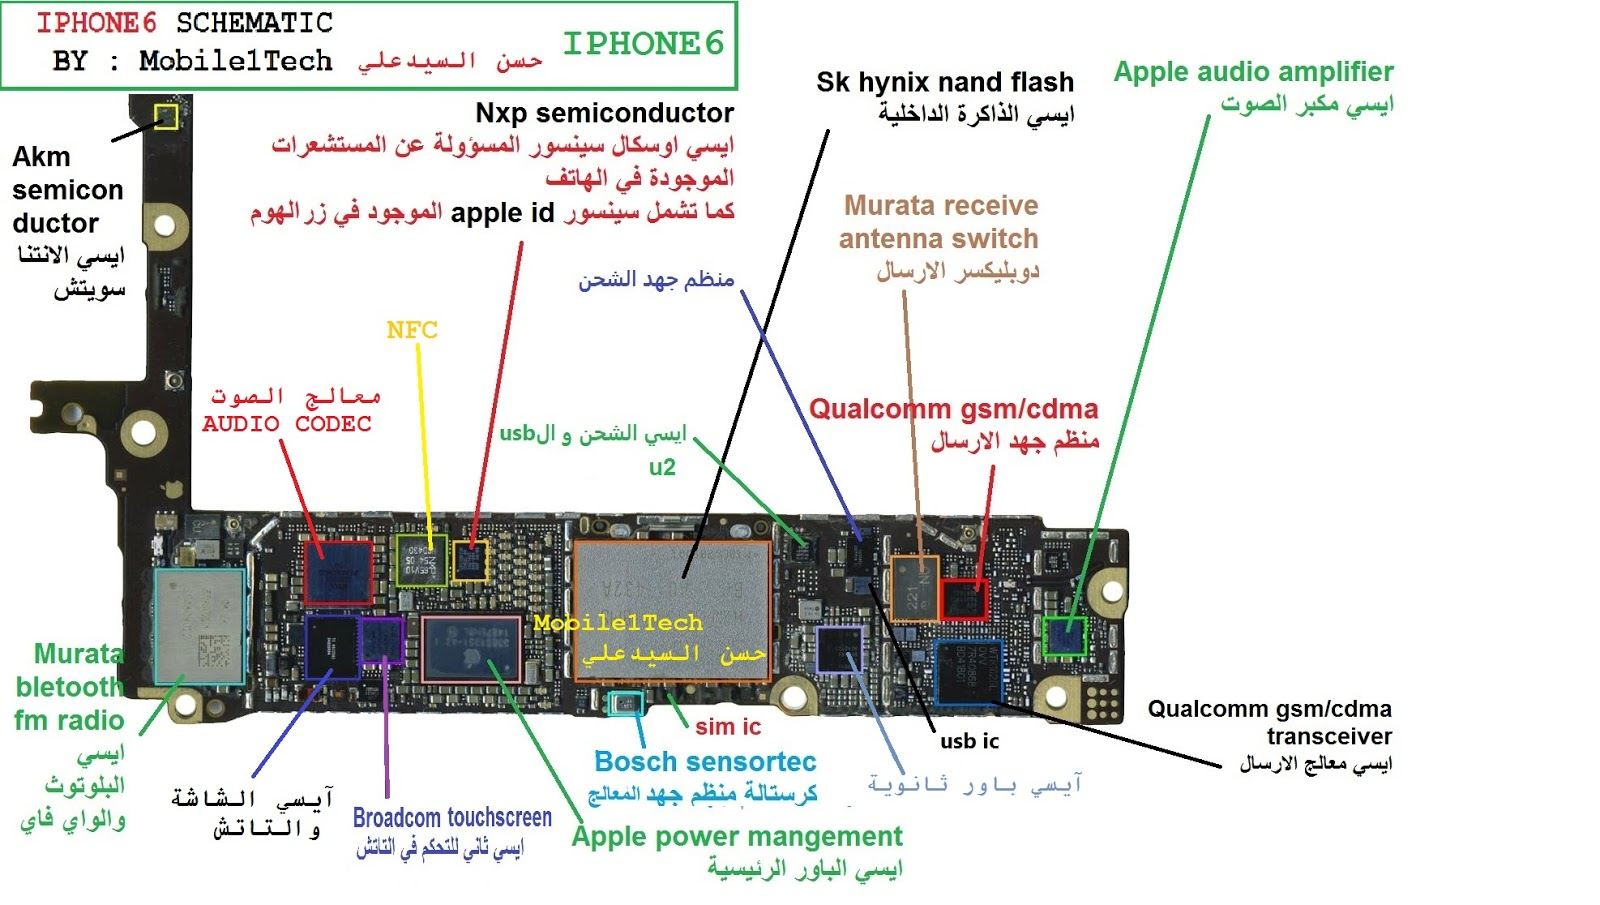 iphone 6 schematic  ���� ���������� ������ 10th june 2016 ������������ mobile1tech